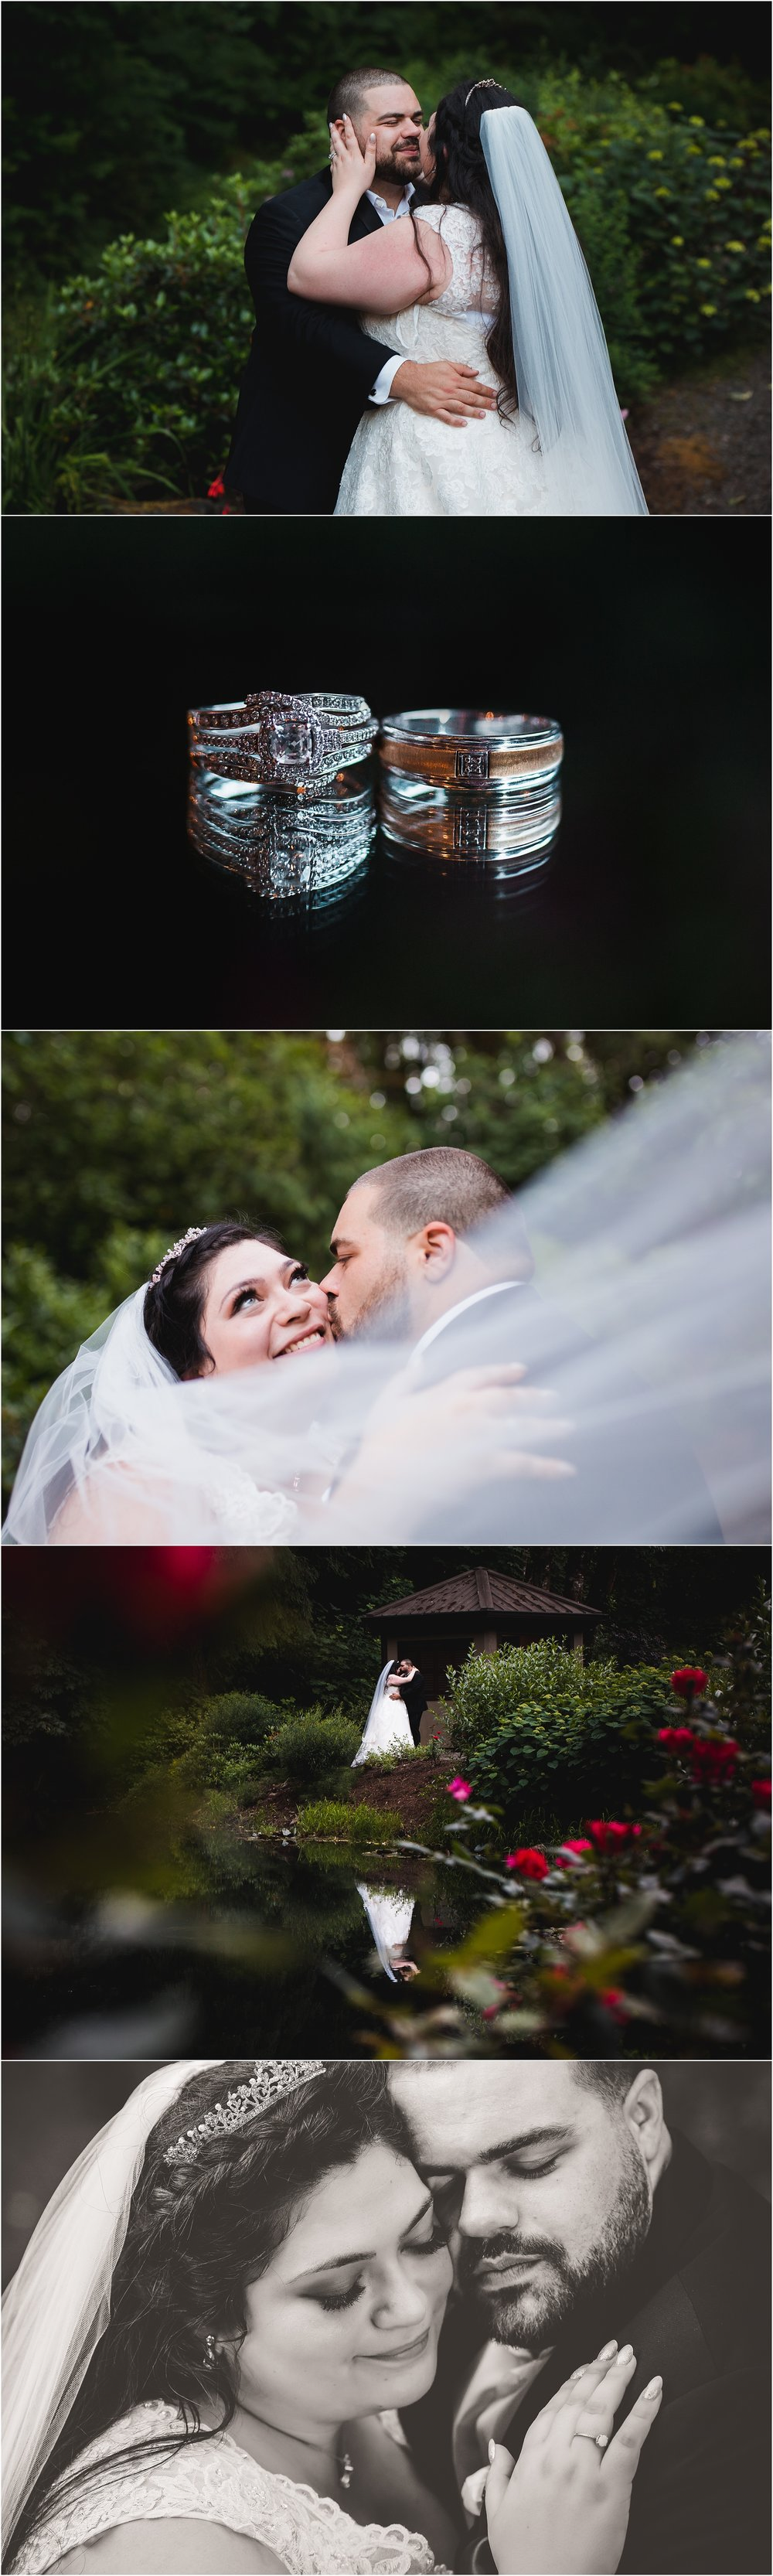 oregon_wedding_photographer_christina_louise_photography.jpg